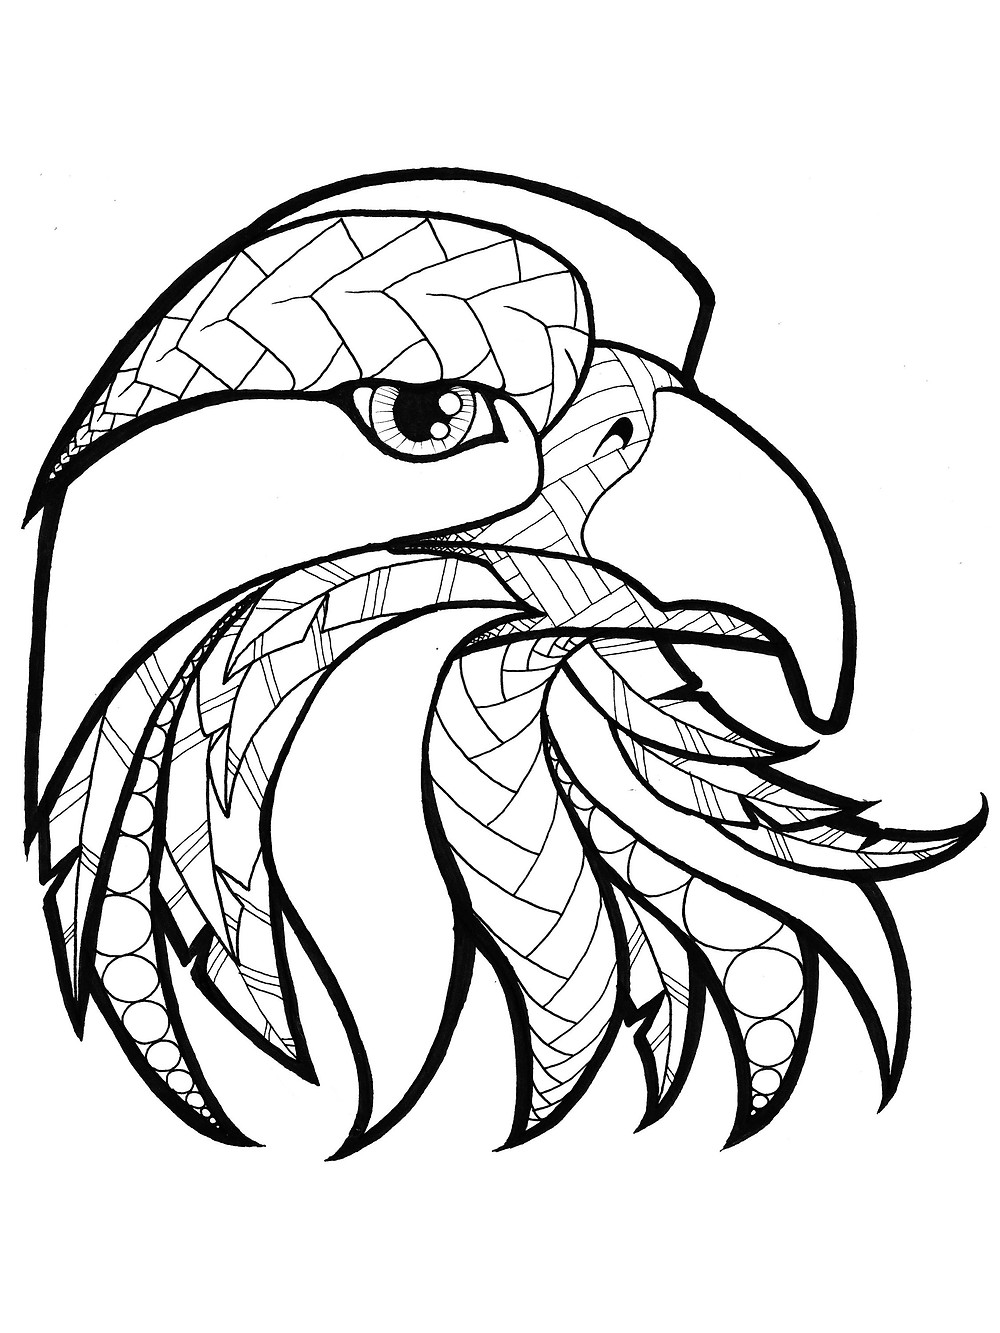 USA Patriotic Coloring Page